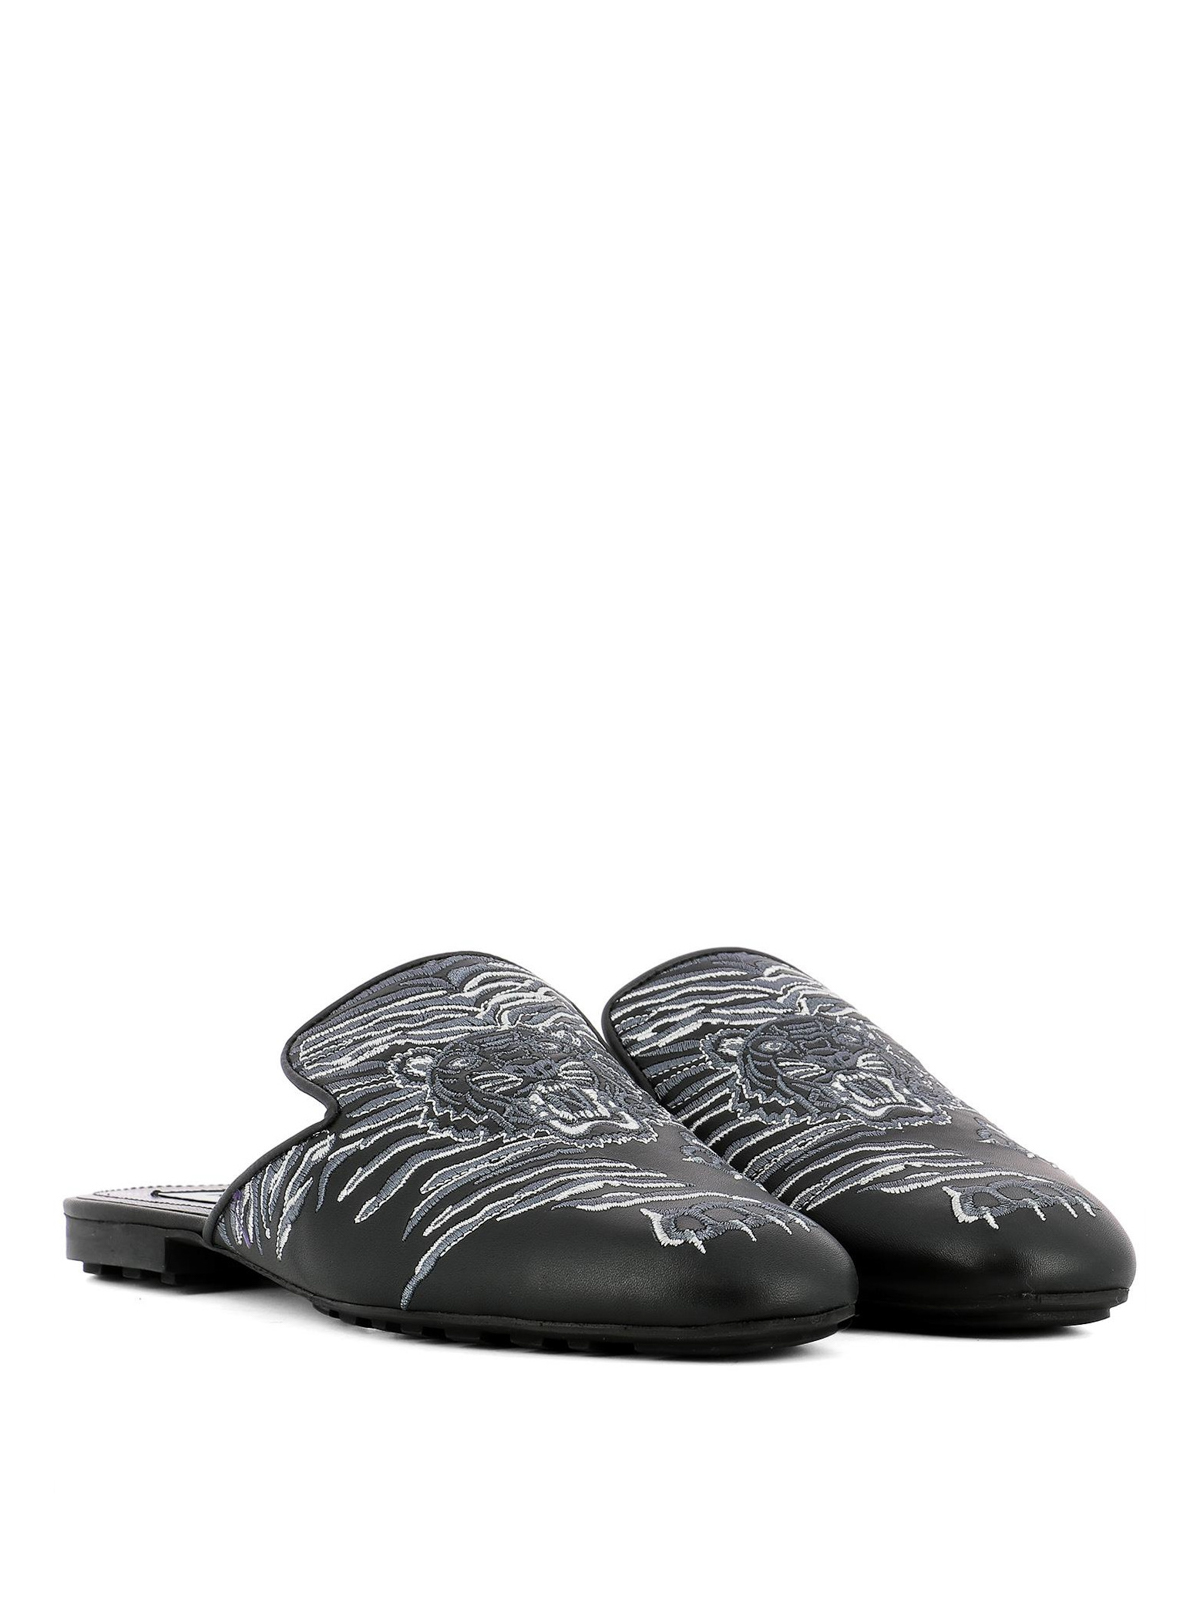 Tiger embroidered leather slippers